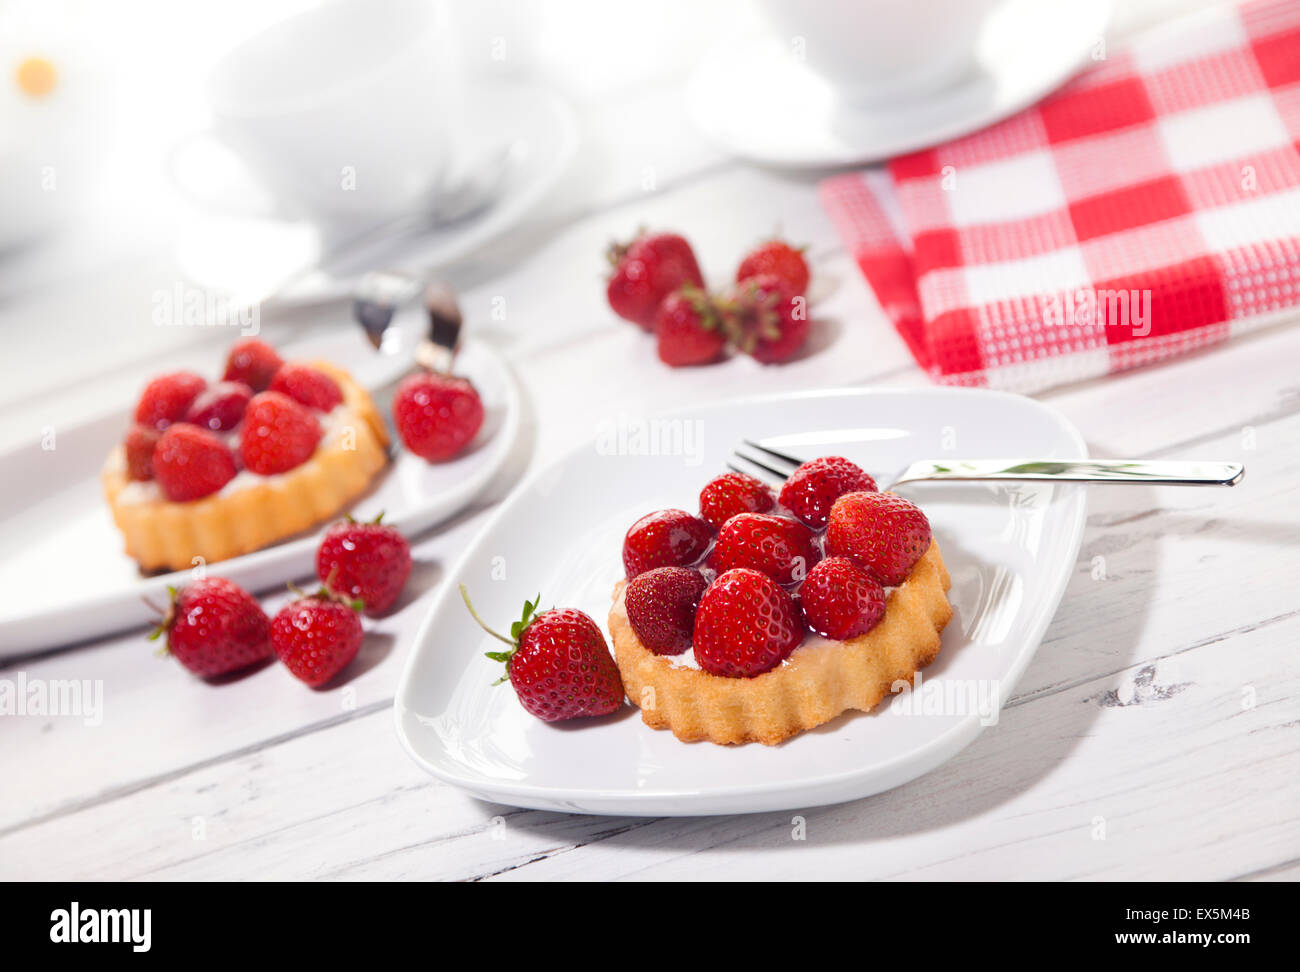 Strawberry shortcakes on coffee table, tilted view - Stock Image